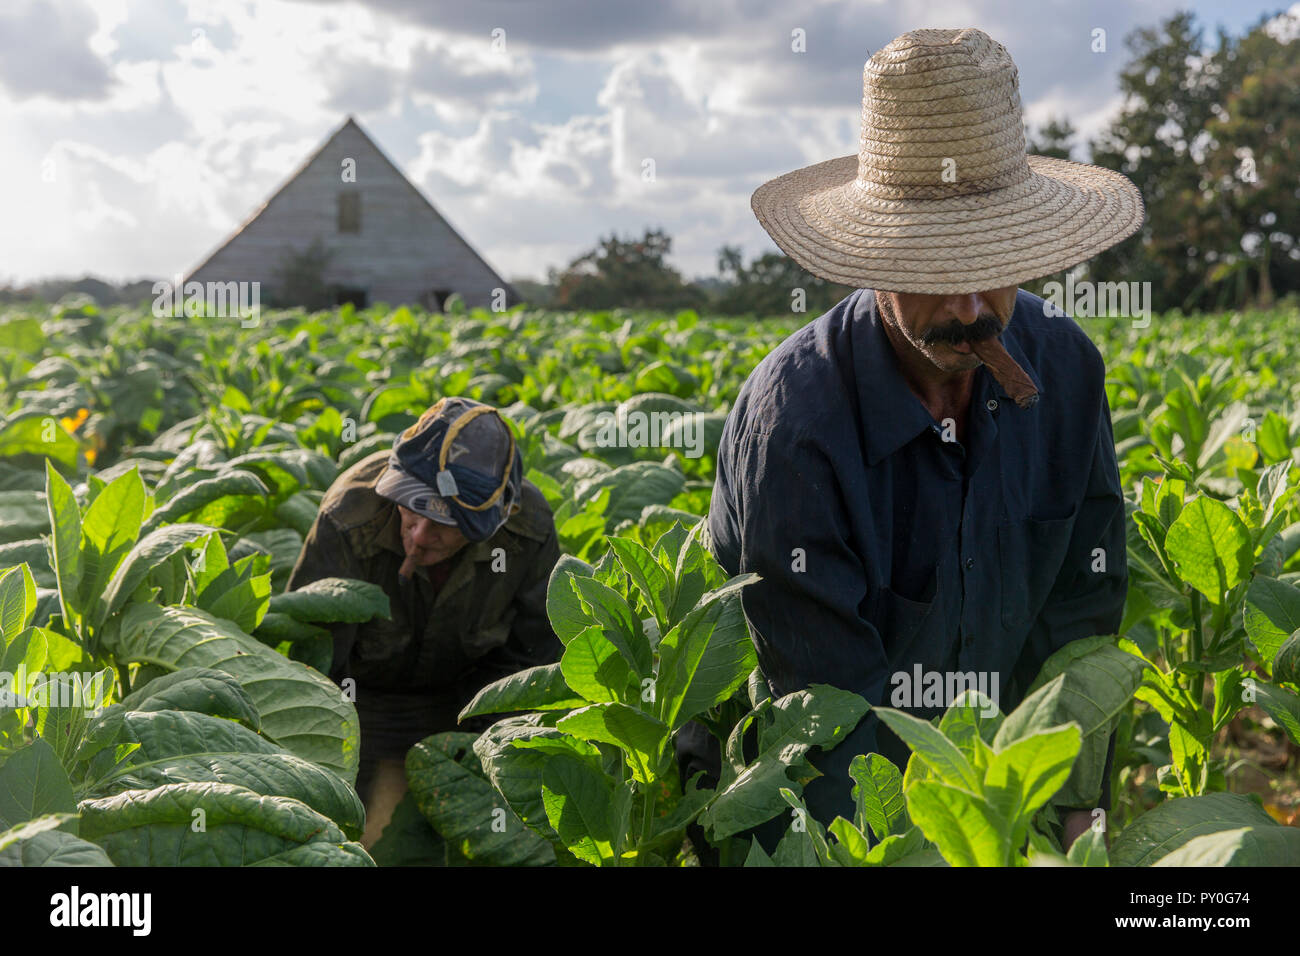 Two men smoking cigars while harvesting tobacco leaves in plantation, Vinales, Pinar del Rio Province, Cuba - Stock Image